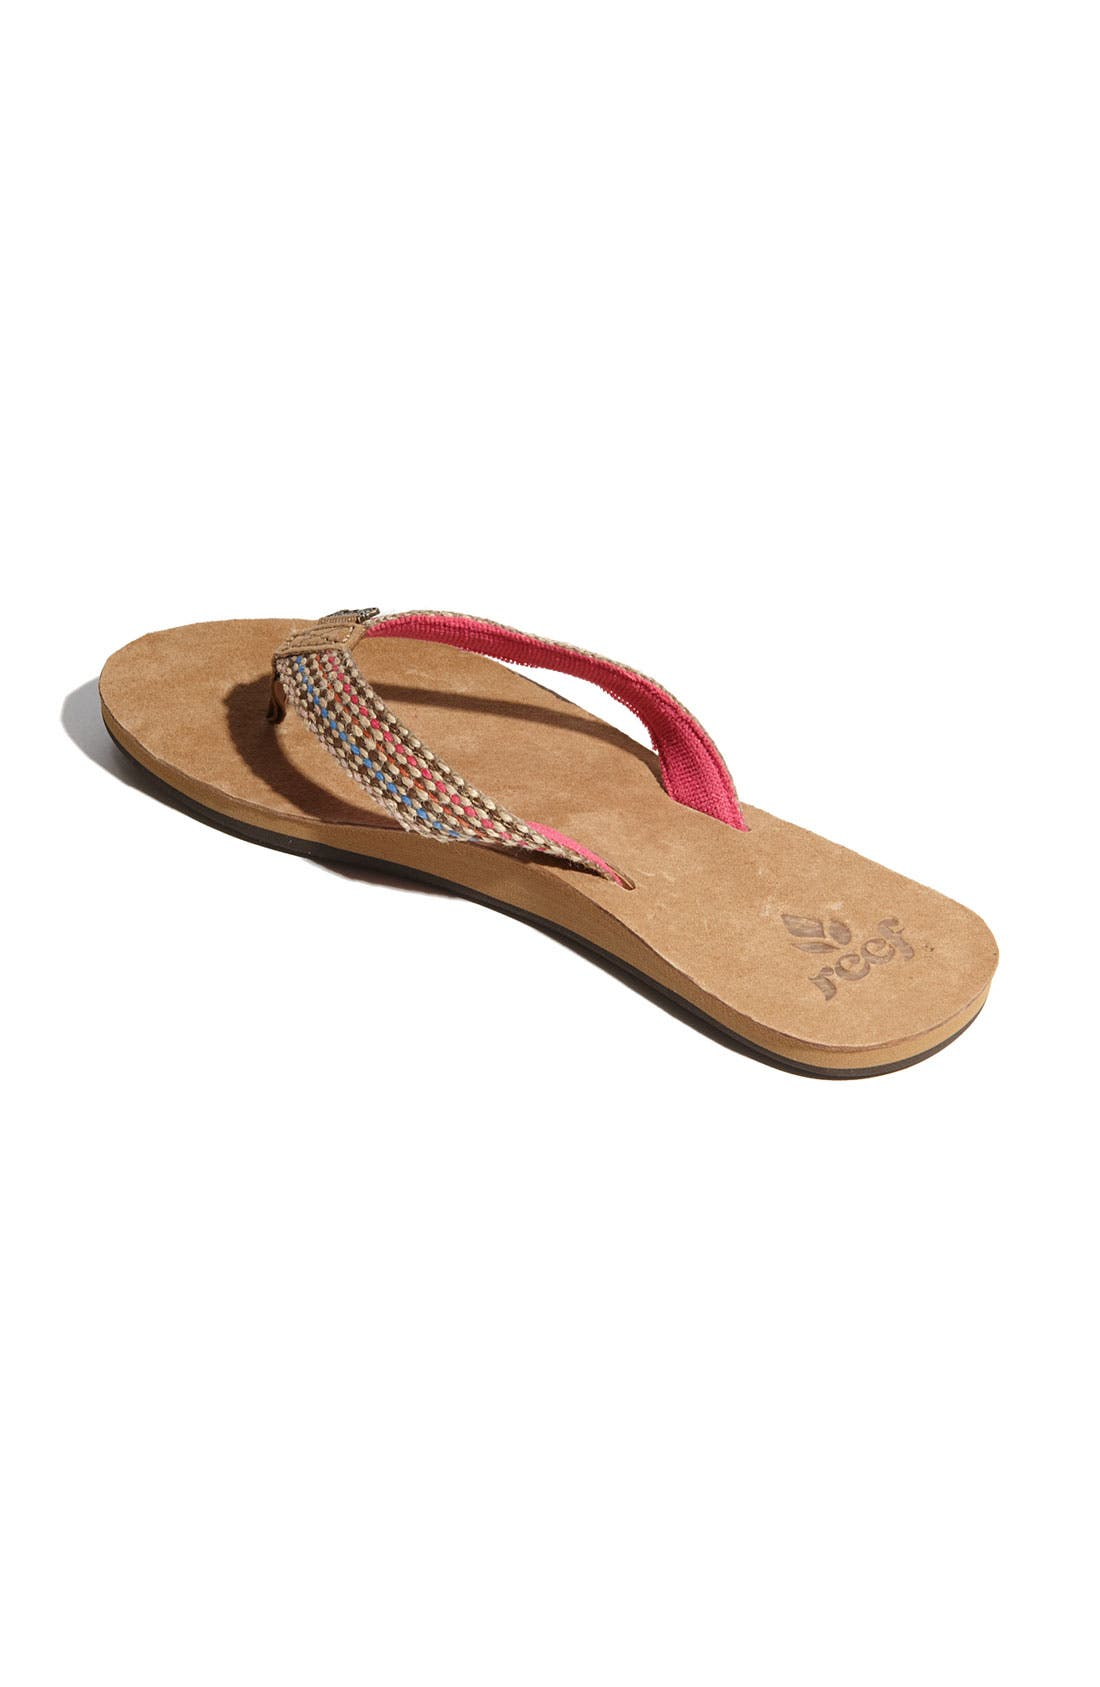 'Gypsylove' Sandal,                         Main,                         color,